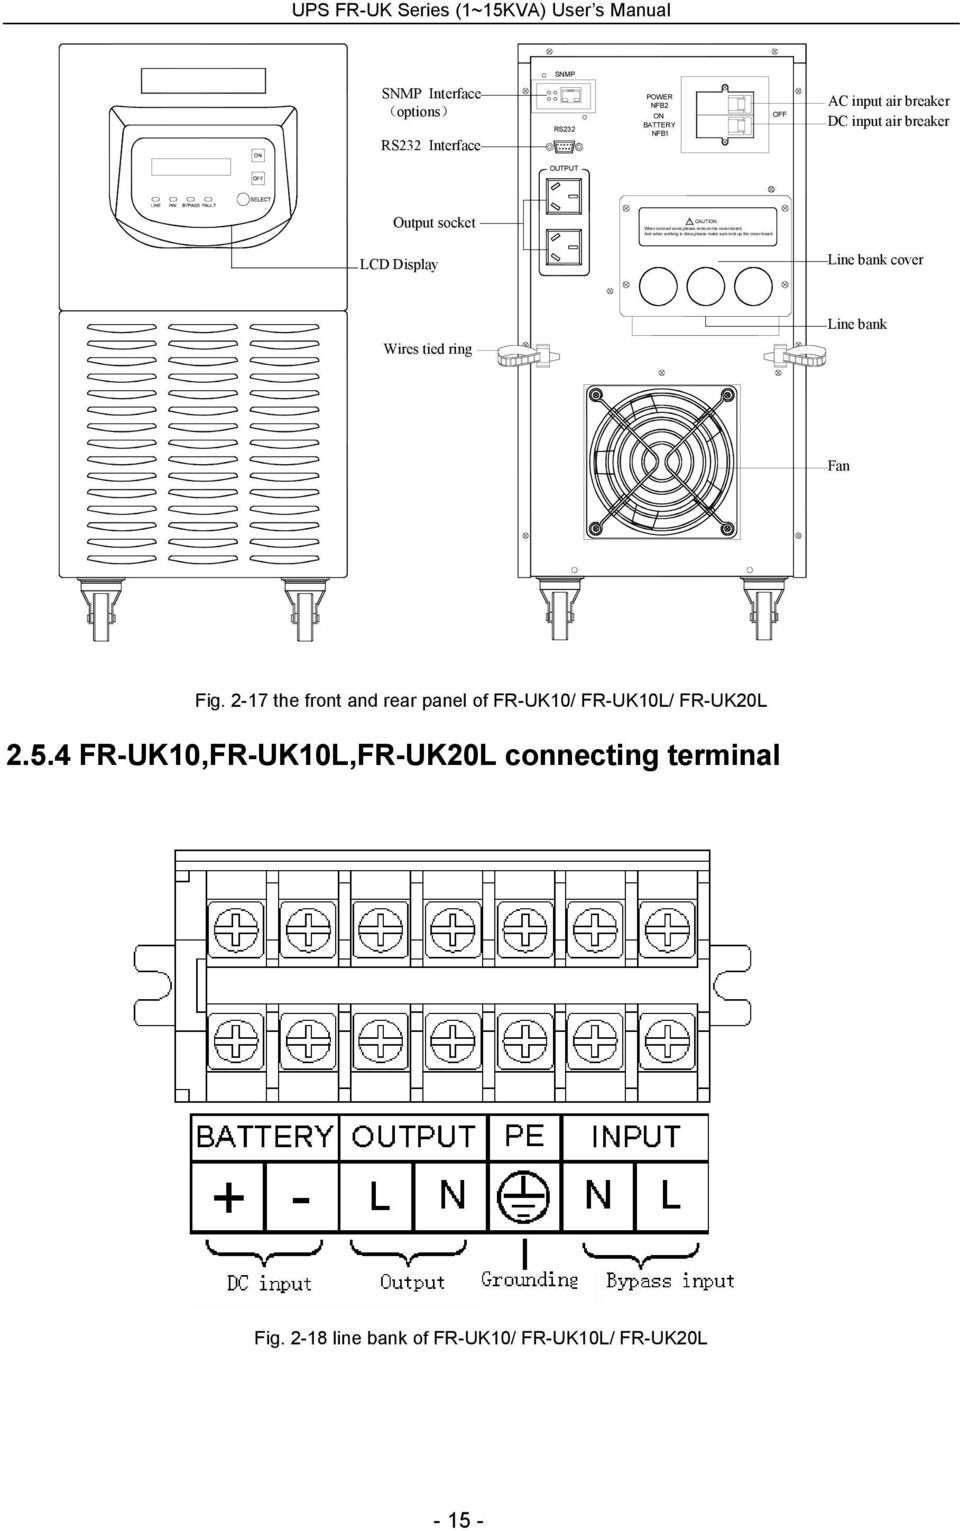 Ups Fr Uk Series1 15kva Technical Manual Pdf Wire Ring Diagram Ac Caution When Connect Wiresplease Remove The Cover Board And Working Is